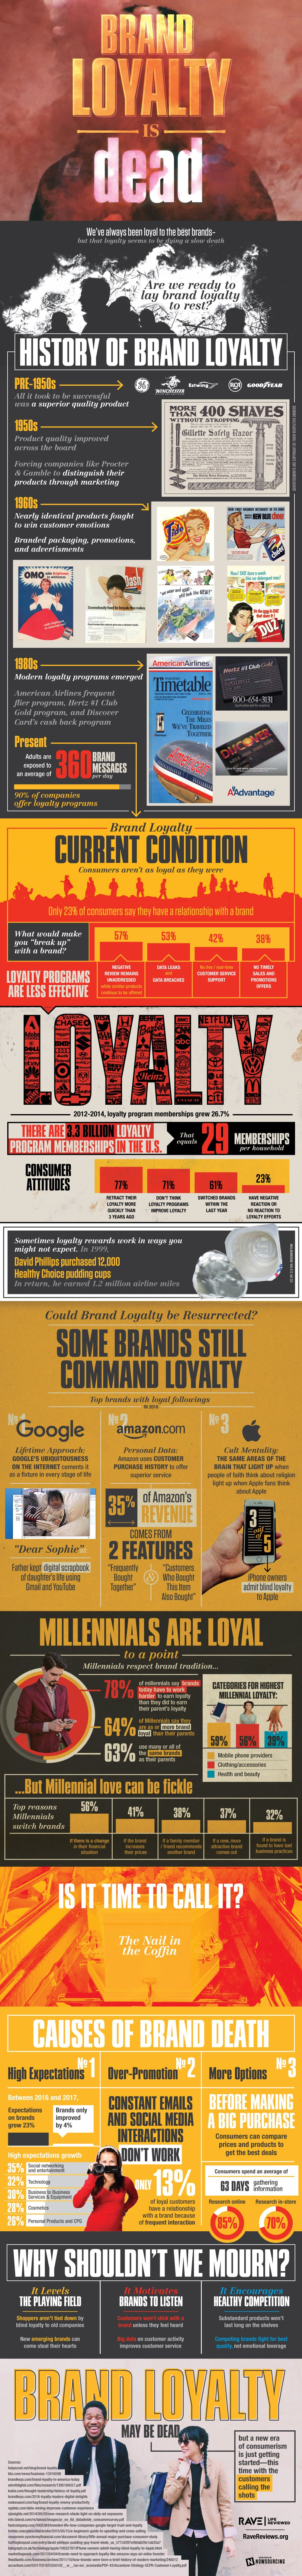 RIP Brand Loyalty! - Infographic